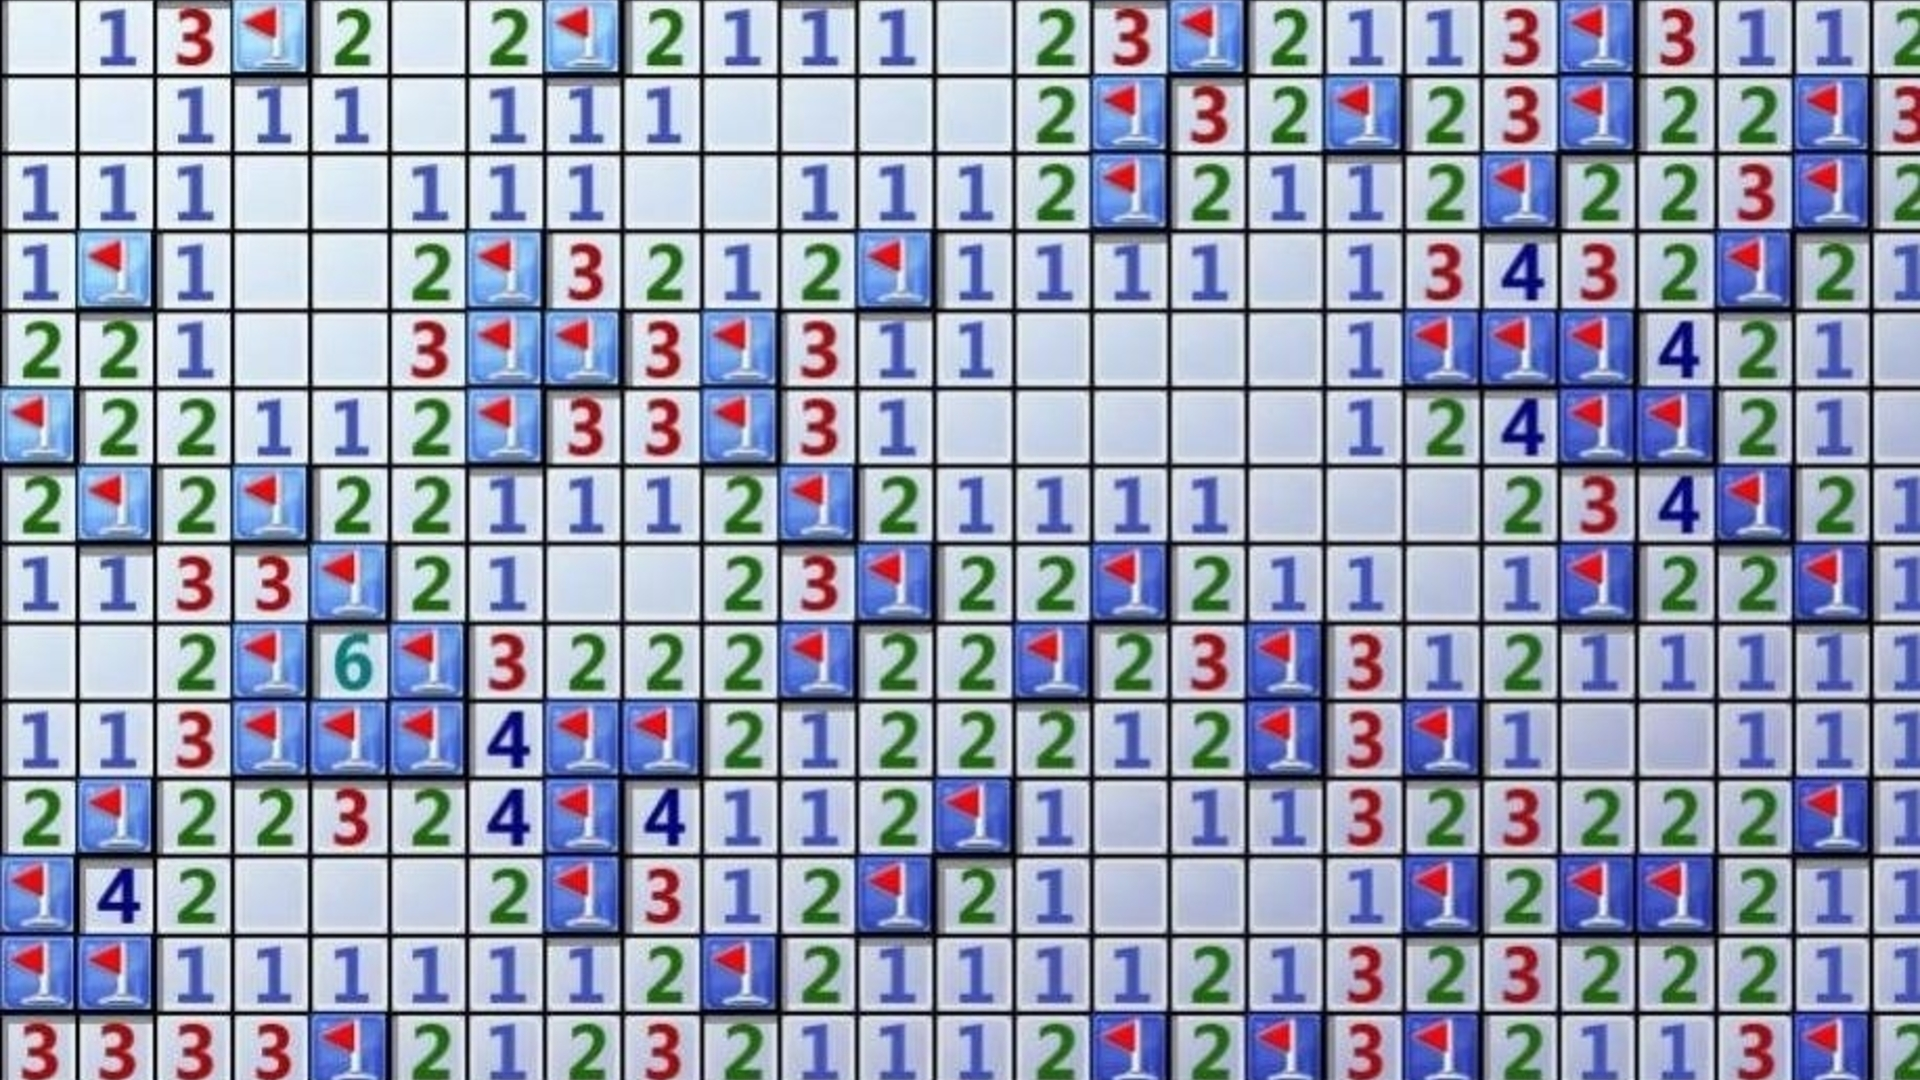 Every step you take: The story of Minesweeper